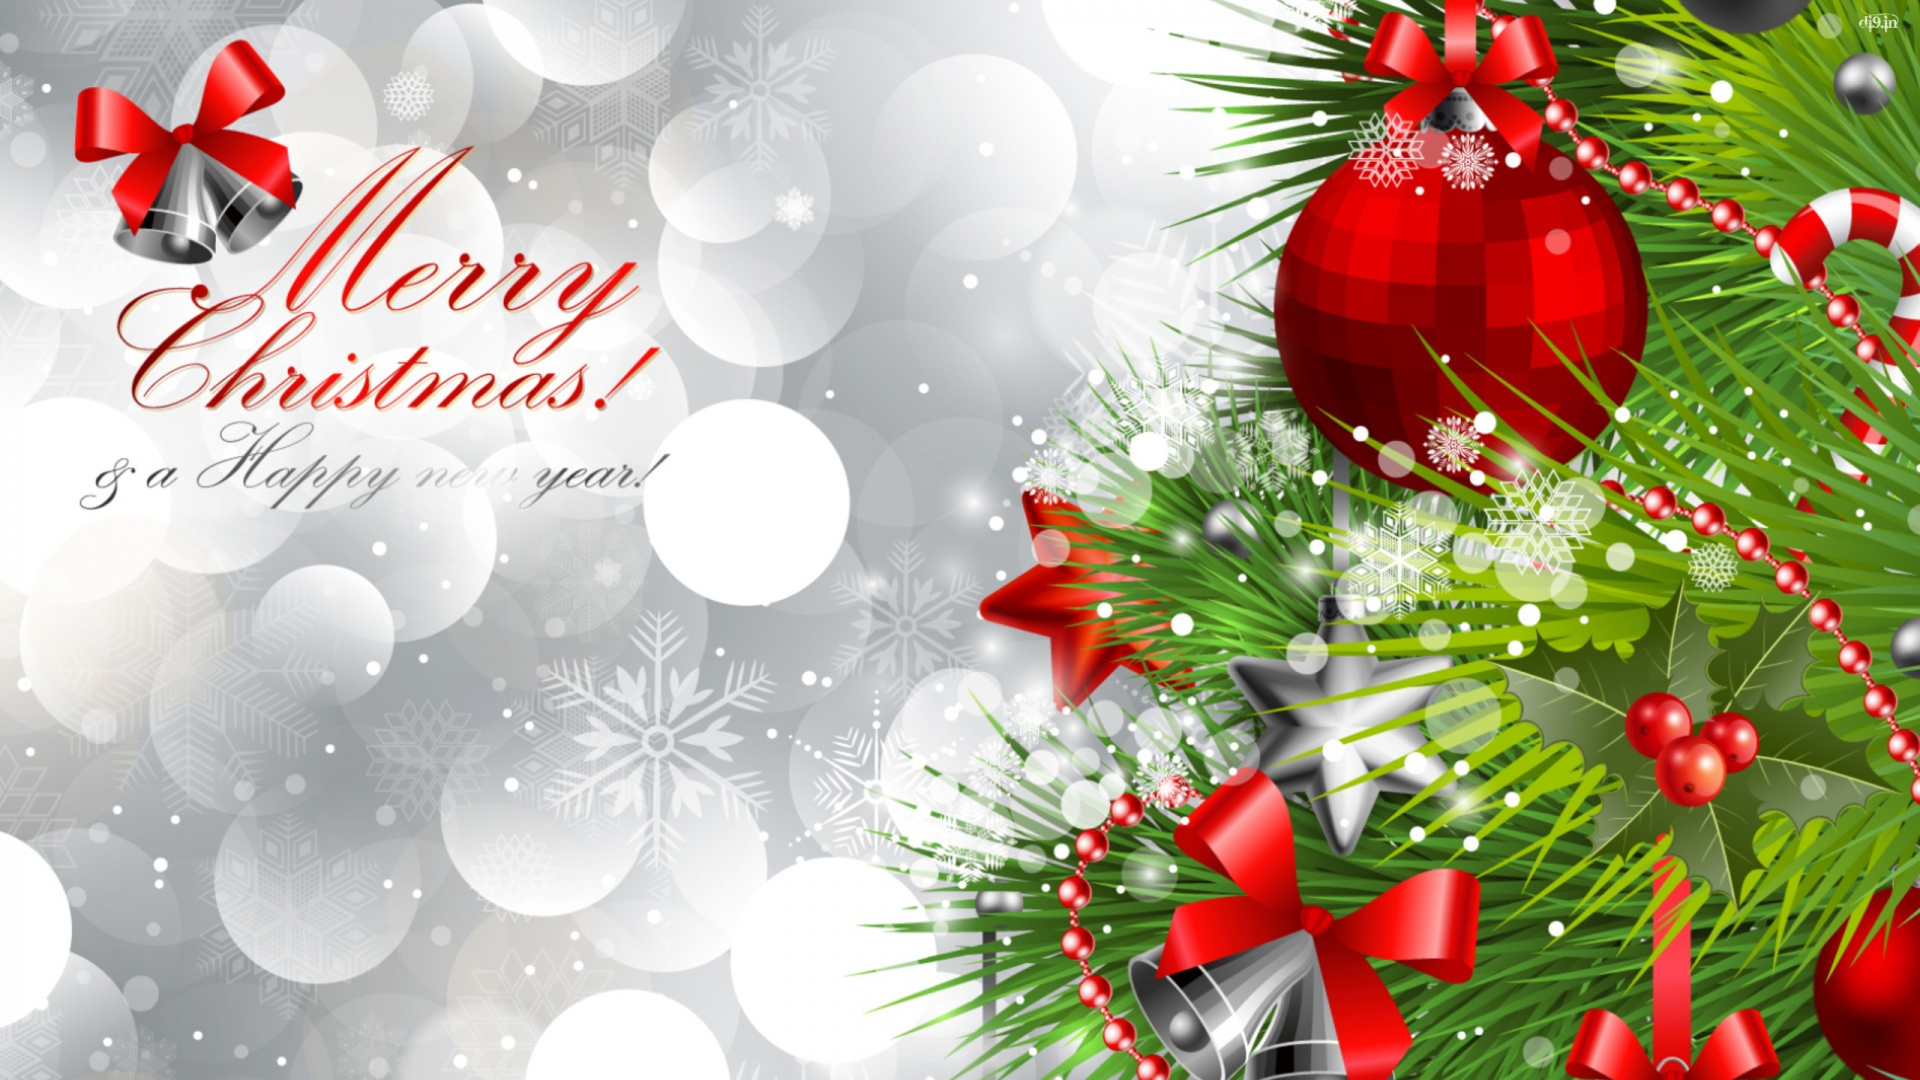 merry christmas and happy new year wallpaper full hd